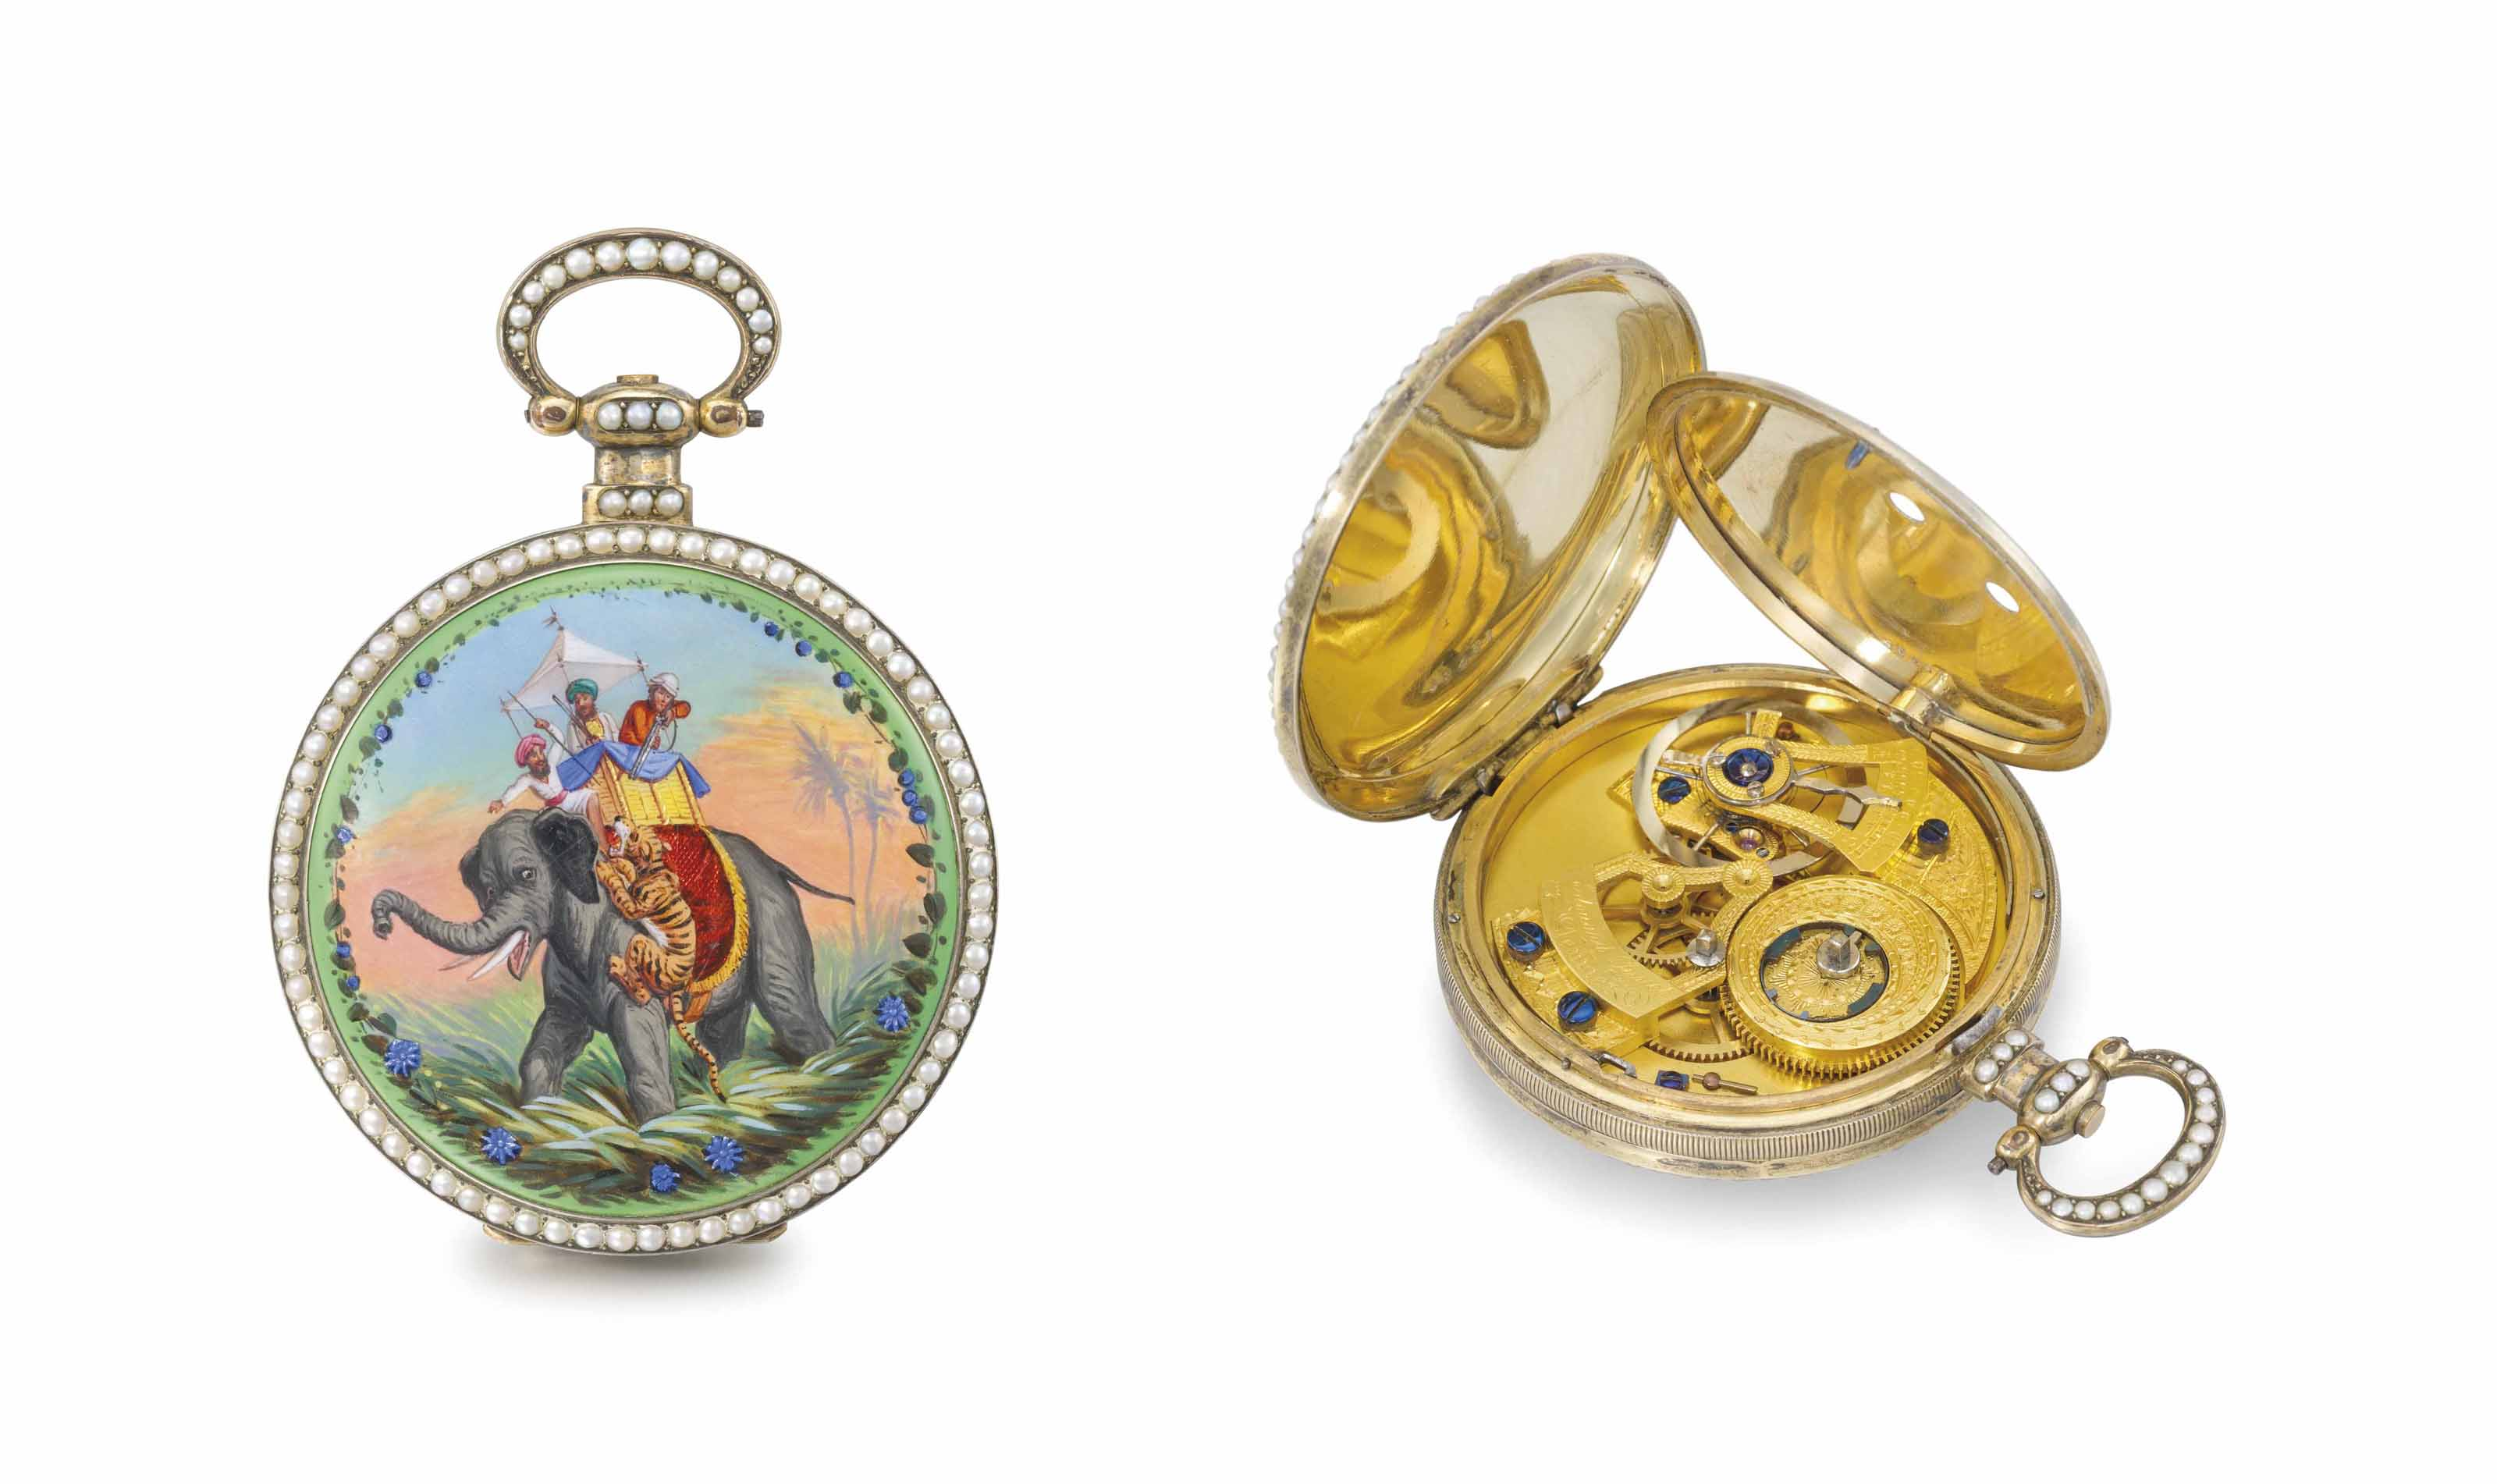 Edouard Juvet. A fine, rare and attractive silver gilt, enamel and pearl-set centre seconds duplex watch, made for the Chinese market